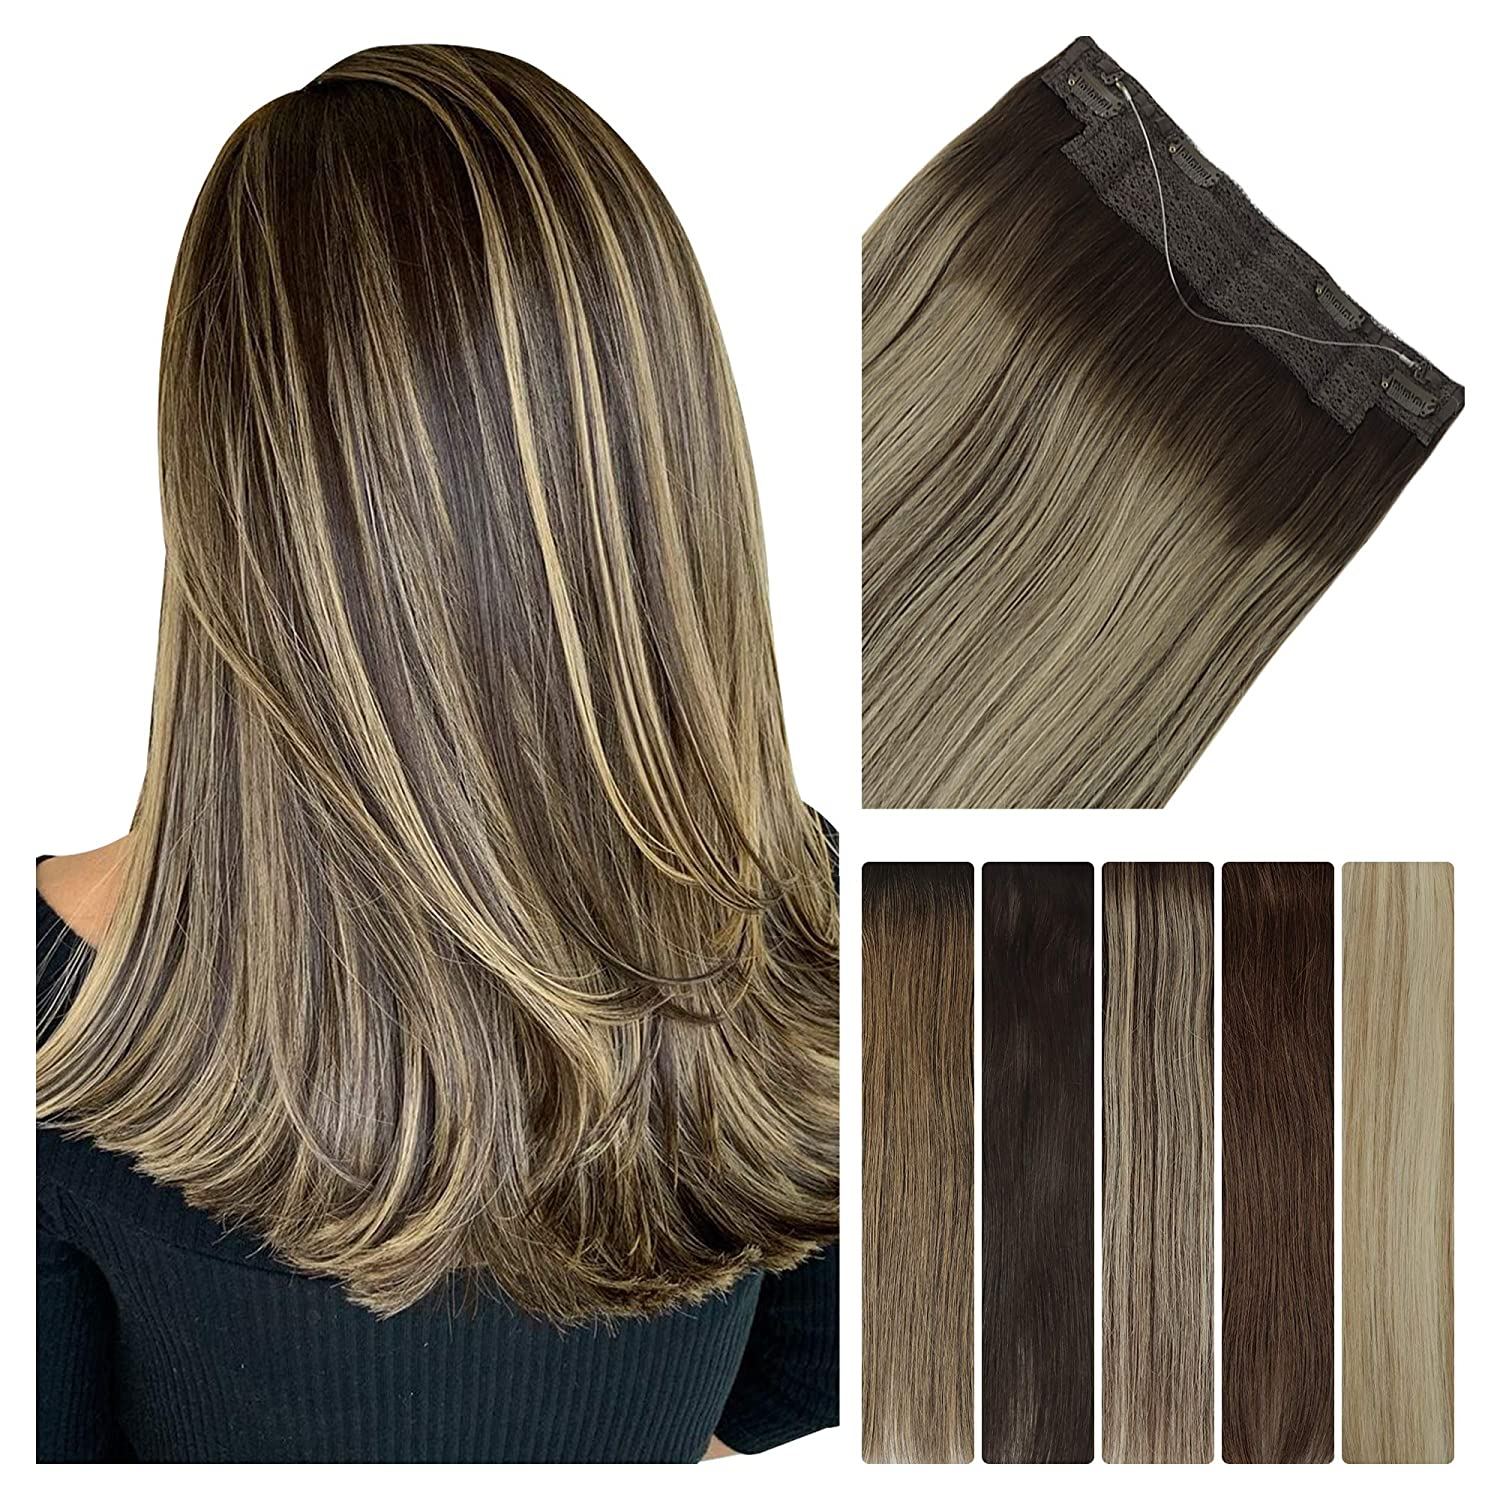 LeaLea Human Hair Extensions Halo 20 Chocolate Ombre Fort Worth Mall B Mail order Inch